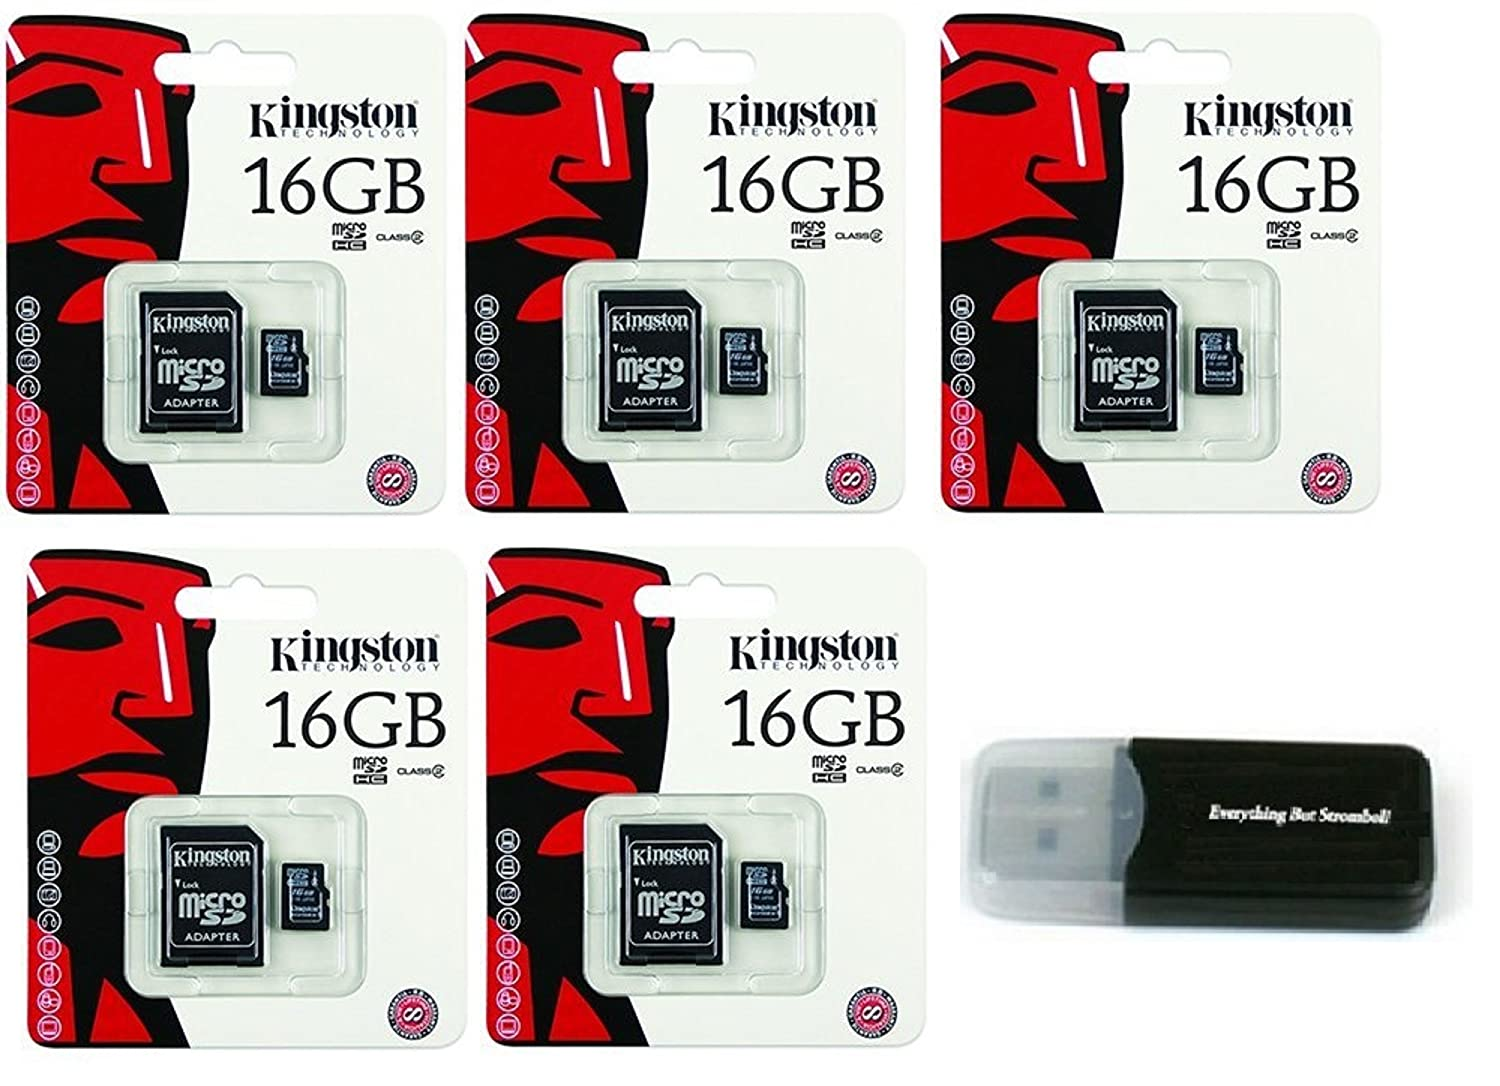 Amazon.com: Kingston - Tarjeta de memoria MicroSD HC clase 4 ...